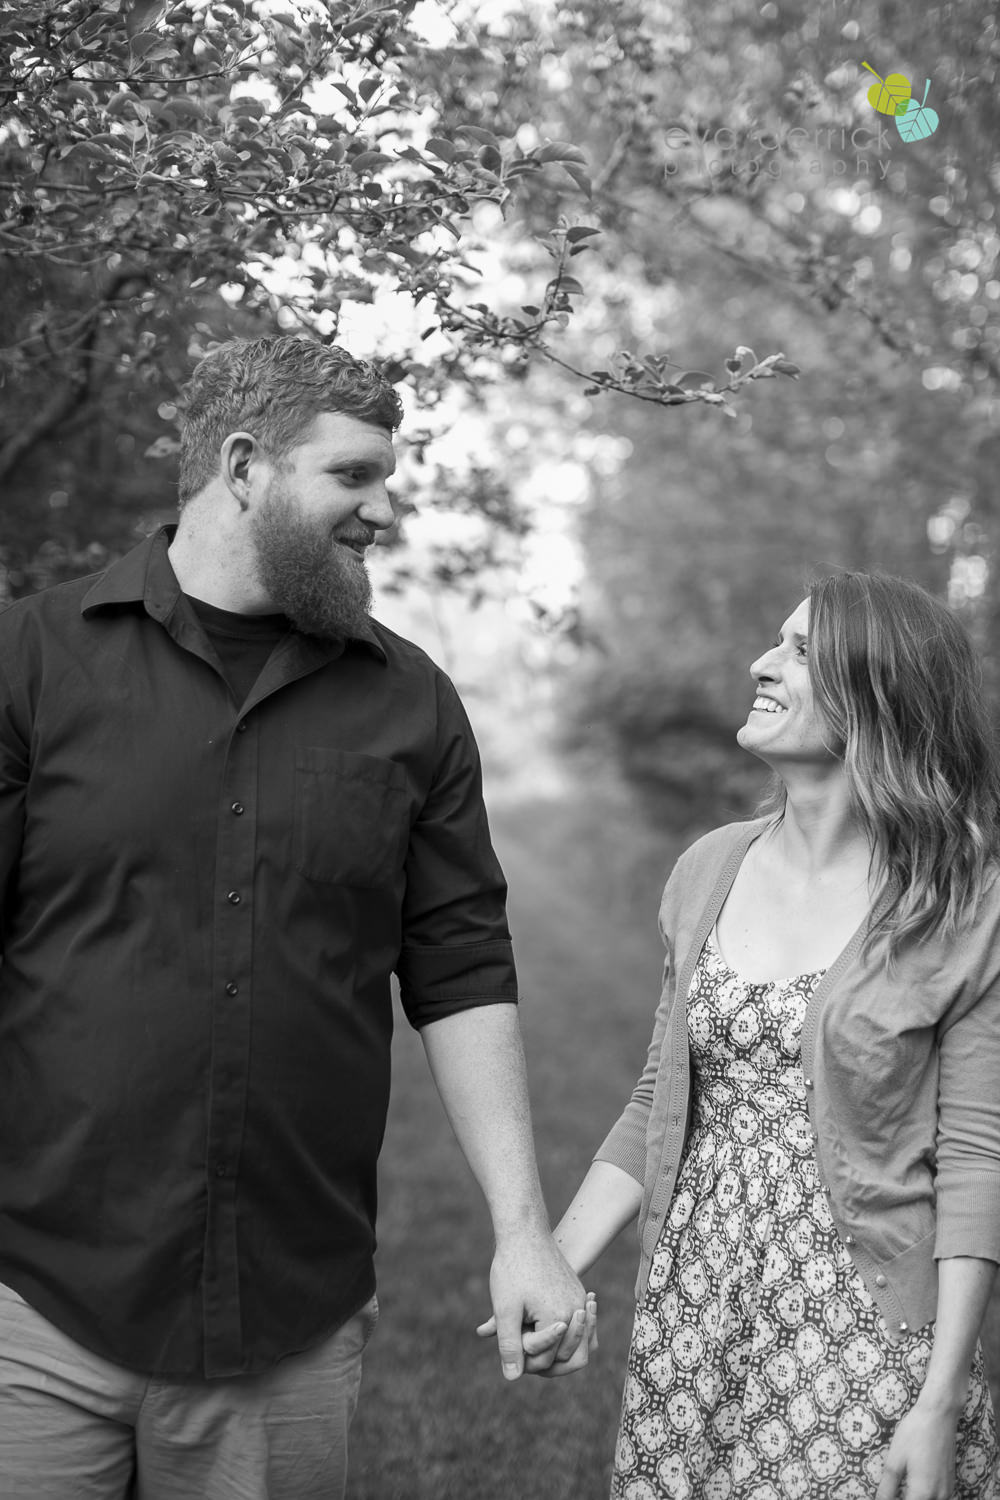 Millgrove-Photographer-Millgrove-Engagement-Session-photography-by-Eva-Derrick-Photography-004.JPG